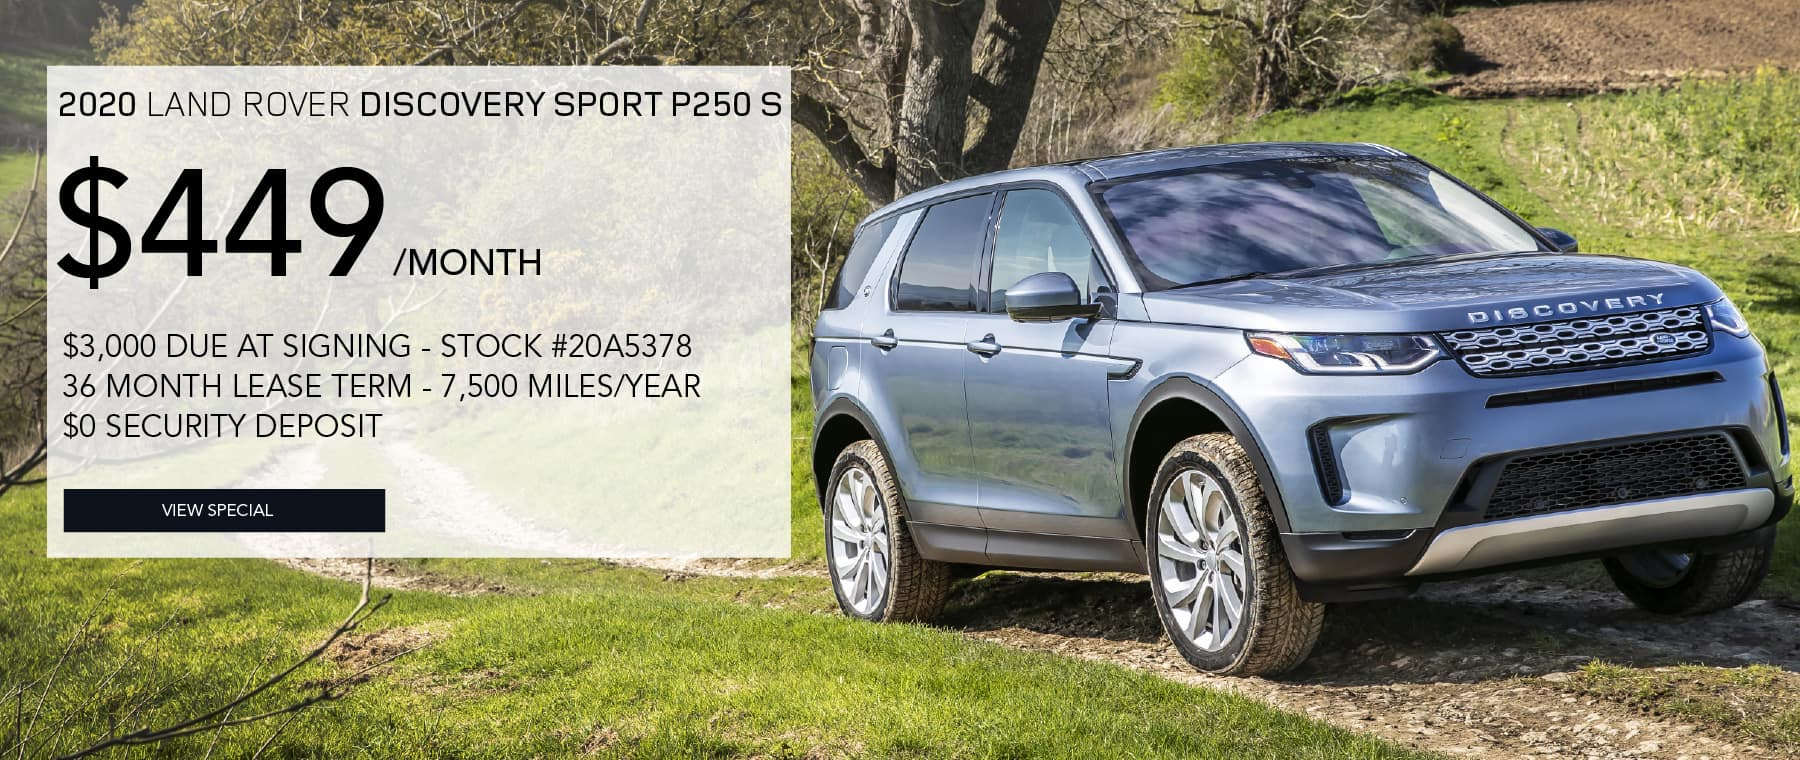 2020 LAND ROVER DISCOVERY SPORT P250 S. $449 PER MONTH FOR 36 MONTHS. $3,000 DUE AT SIGNING. STOCK #20A5378. 7,500 MILES/YEAR. $0 SECURITY DEPOSIT. VIEW SPECIAL. LIGHT BLUE LAND ROVER DISCOVERY SPORT DRIVING DOWN DIRT ROAD THROUGH COUNTRYSIDE.